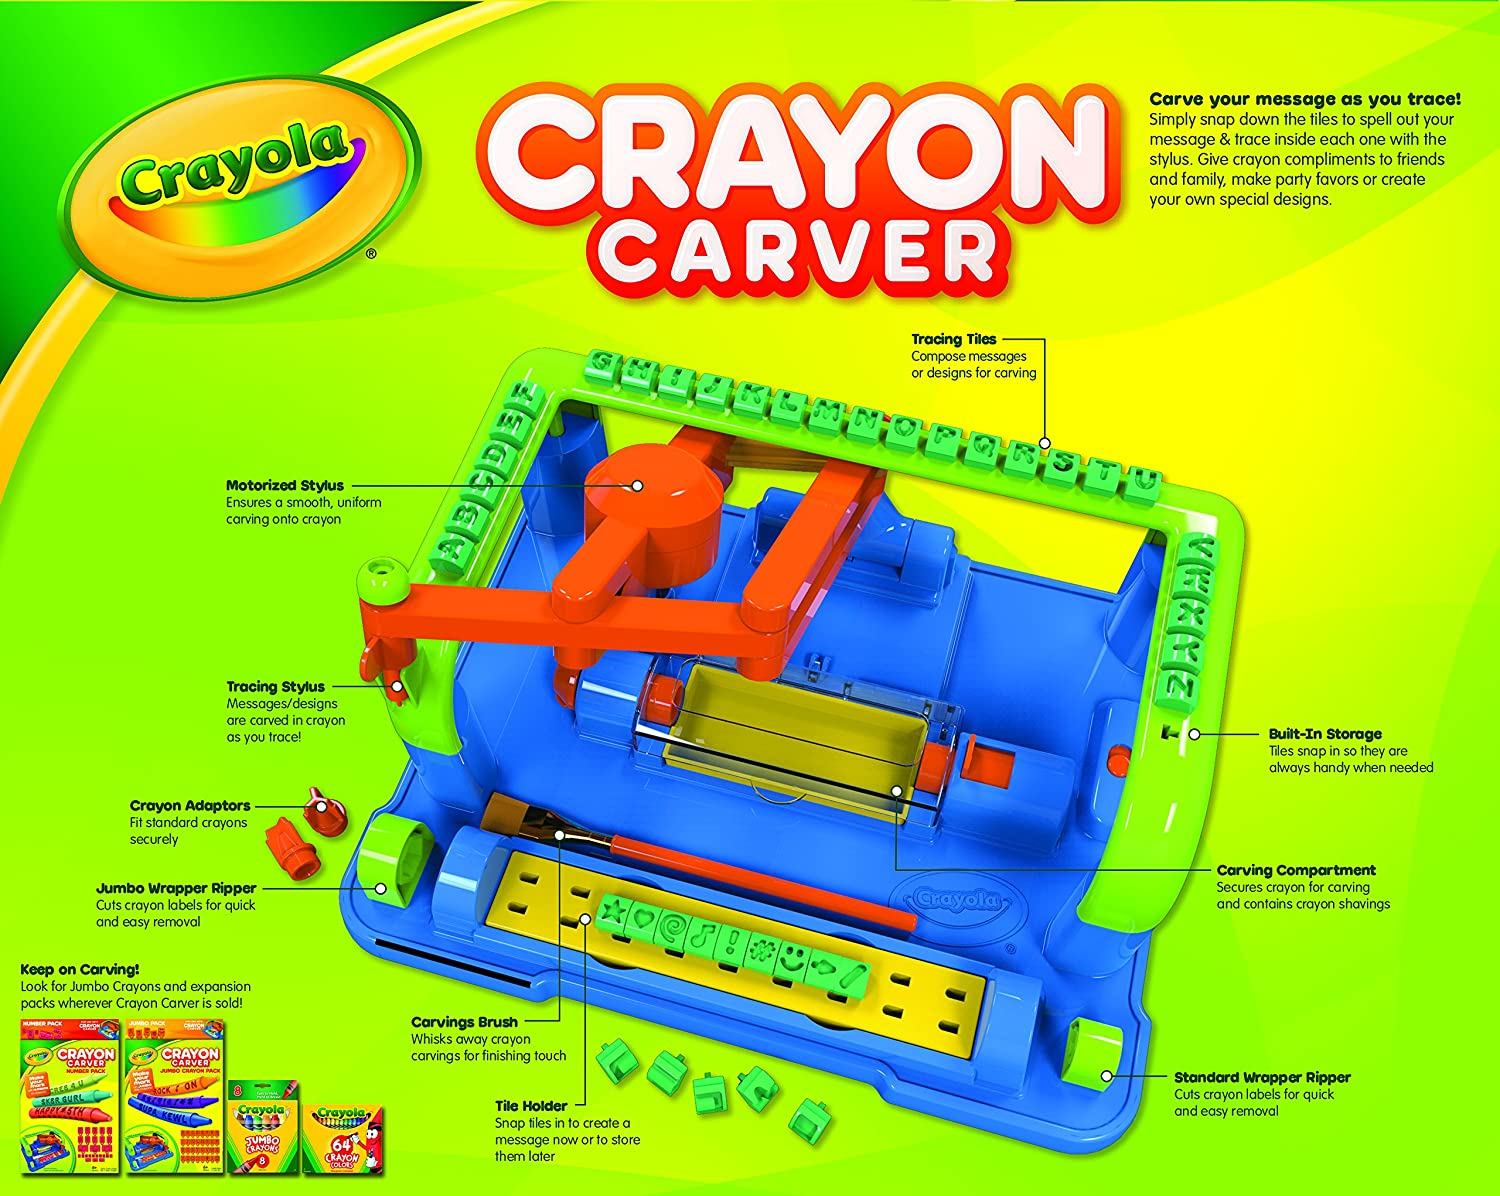 Amazon.com: Crayola Crayon Carver: Toys & Games